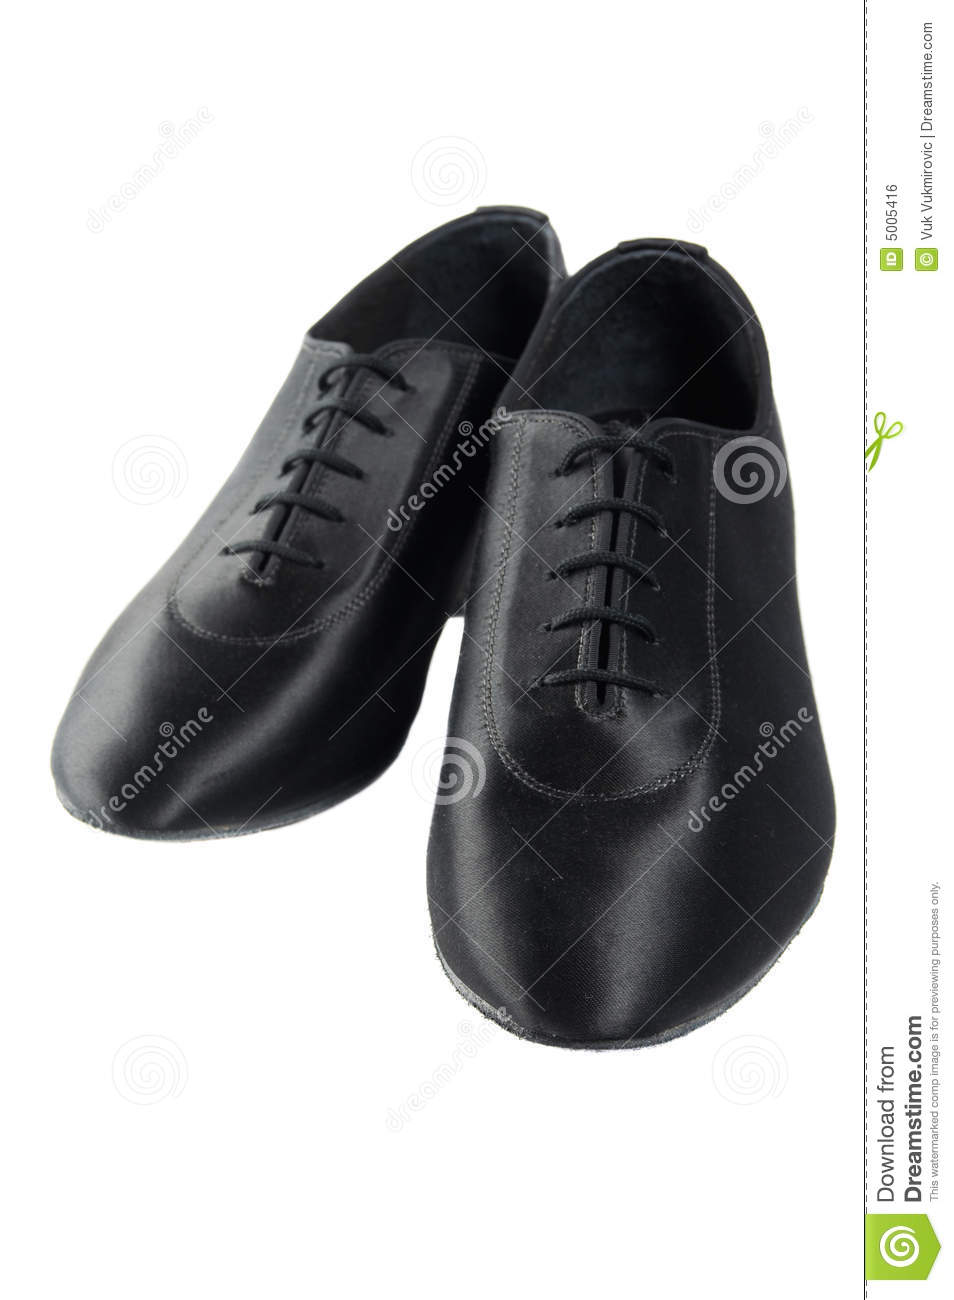 Men Dance Shoes Royalty Free Stock Image - Image: 5005416